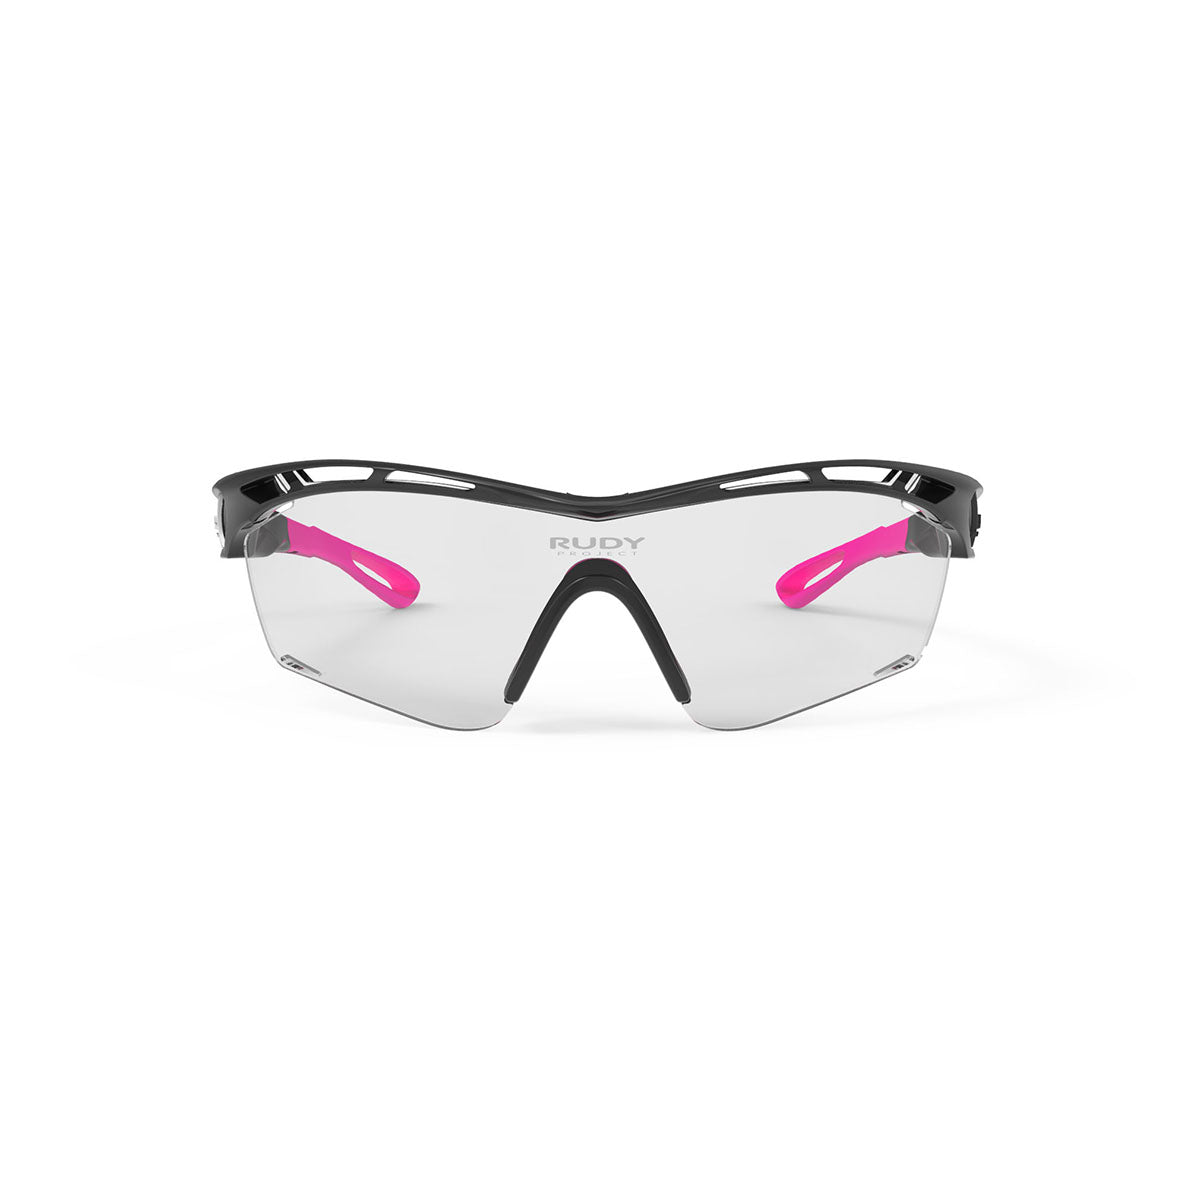 Rudy Project - Tralyx Golf - frame color: Matte Black - lens color: ImpactX-2 Photochromic Laser Purple - photo angle: Front View Variant Hover Image